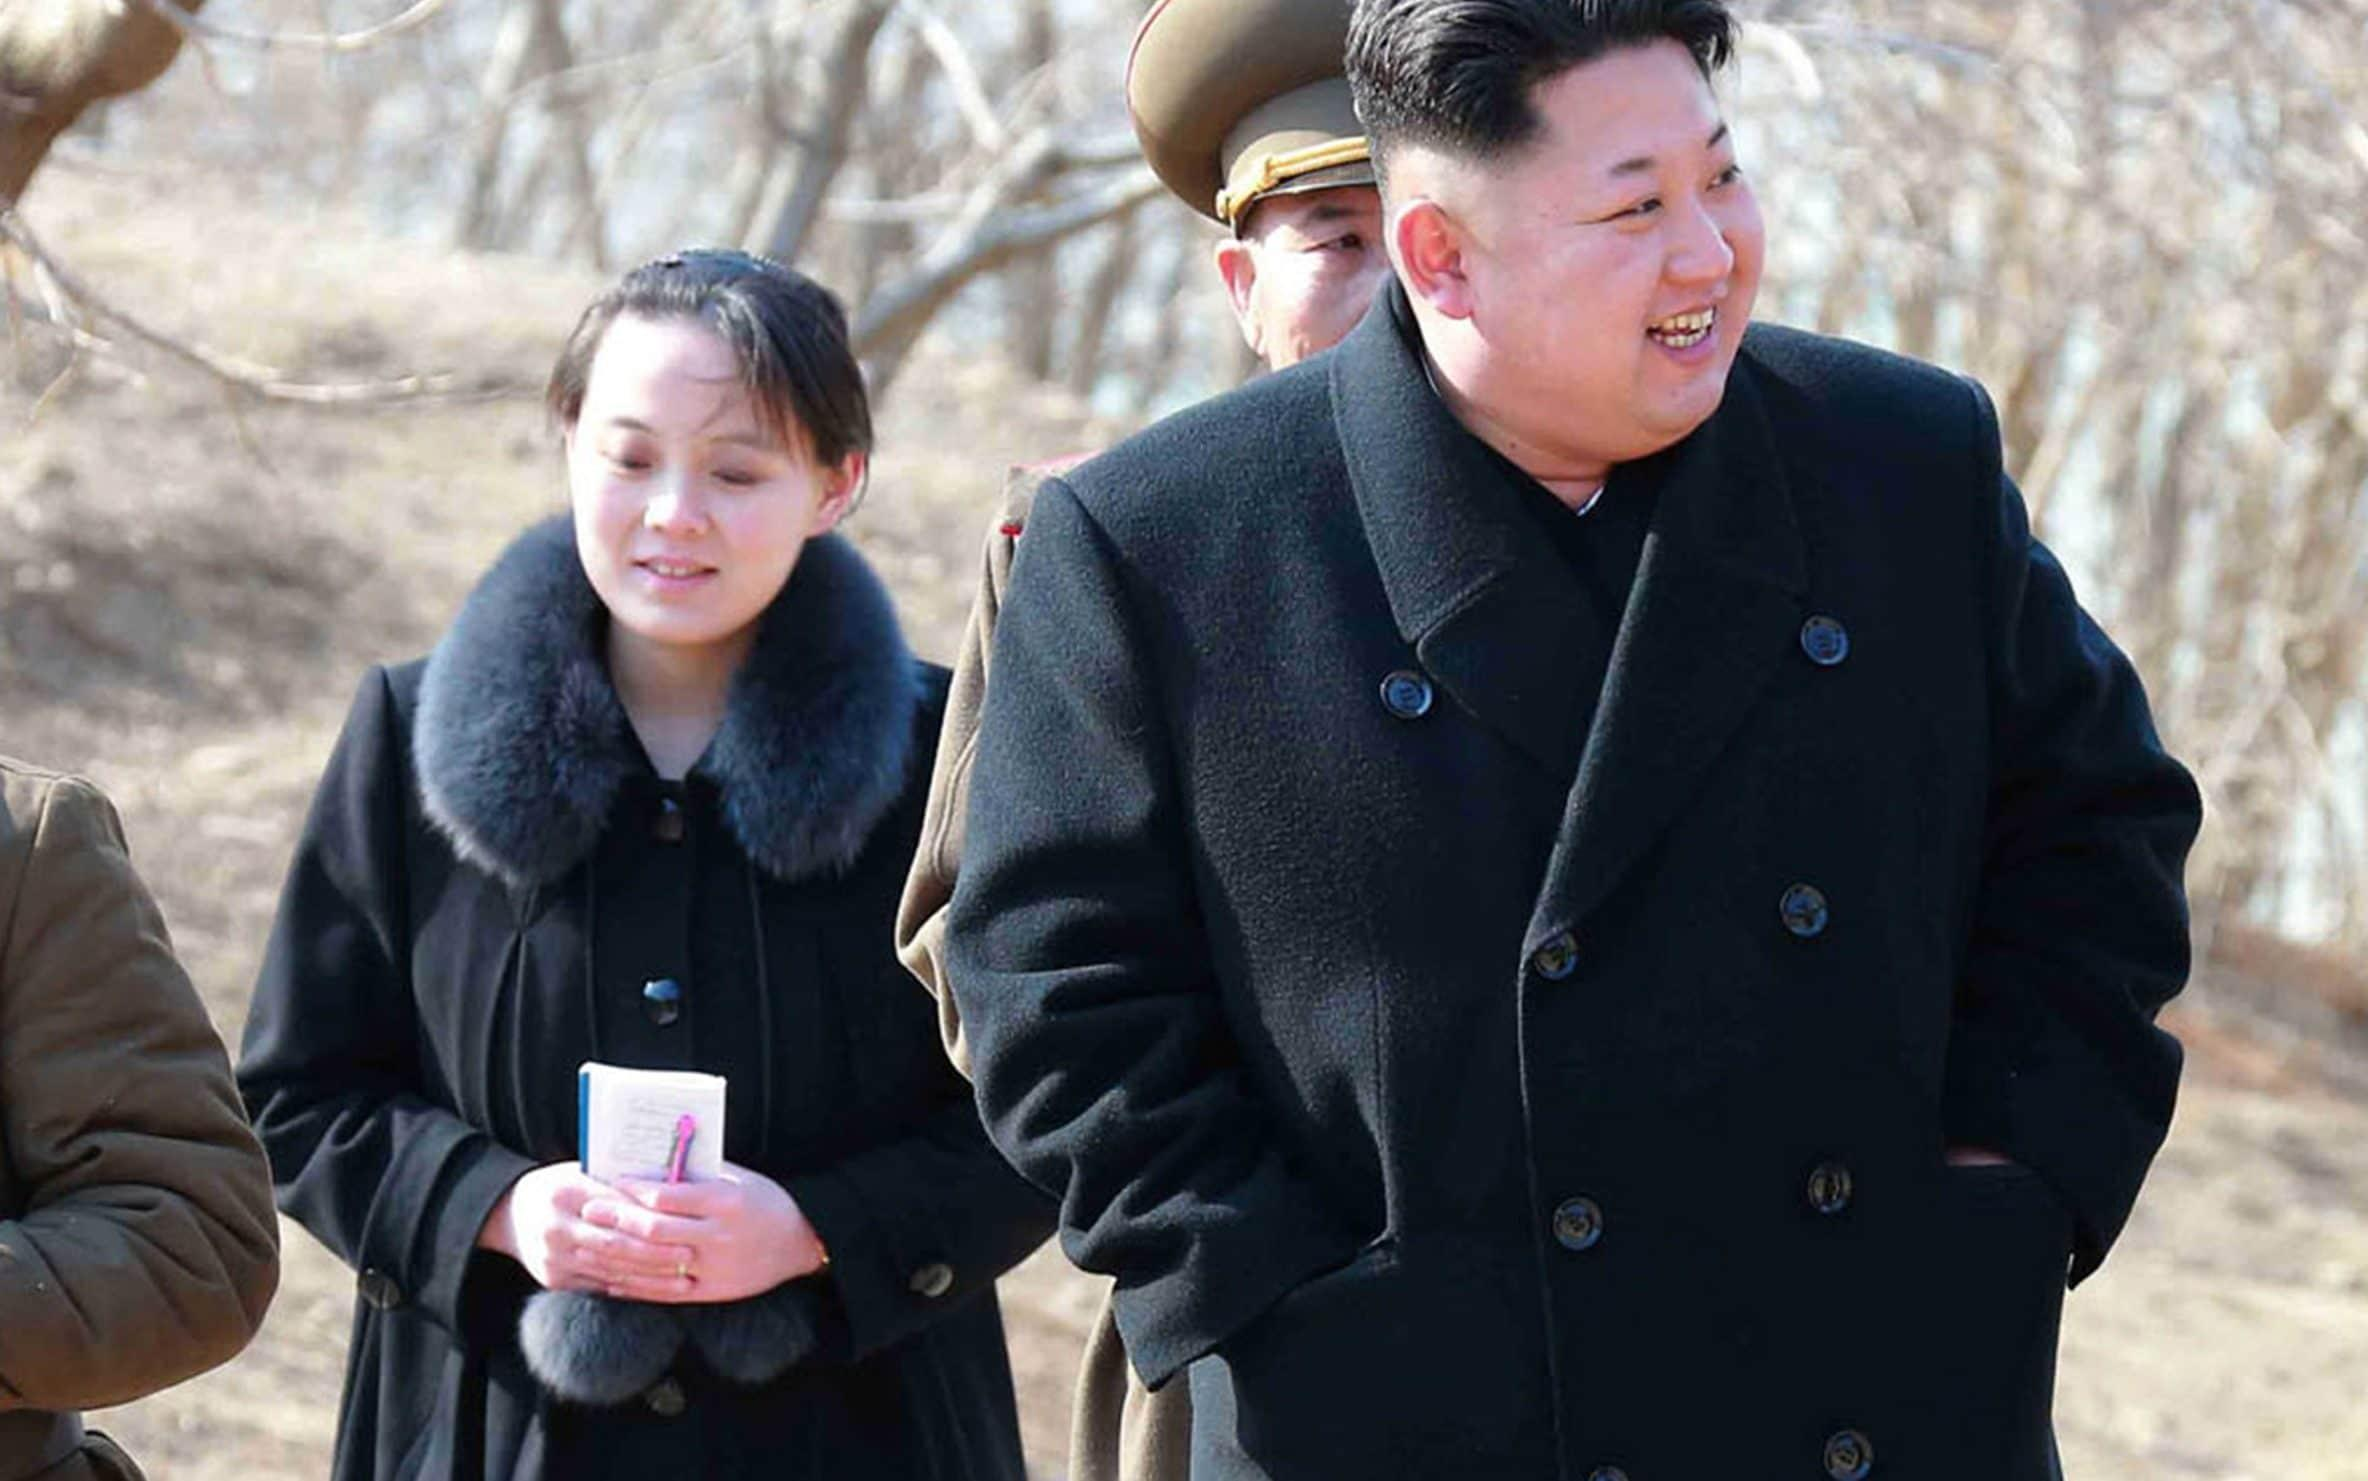 Kim Jong-un's sister to attend the Winter Olympics: what Kim Yo-jong's visit means for Korean relations